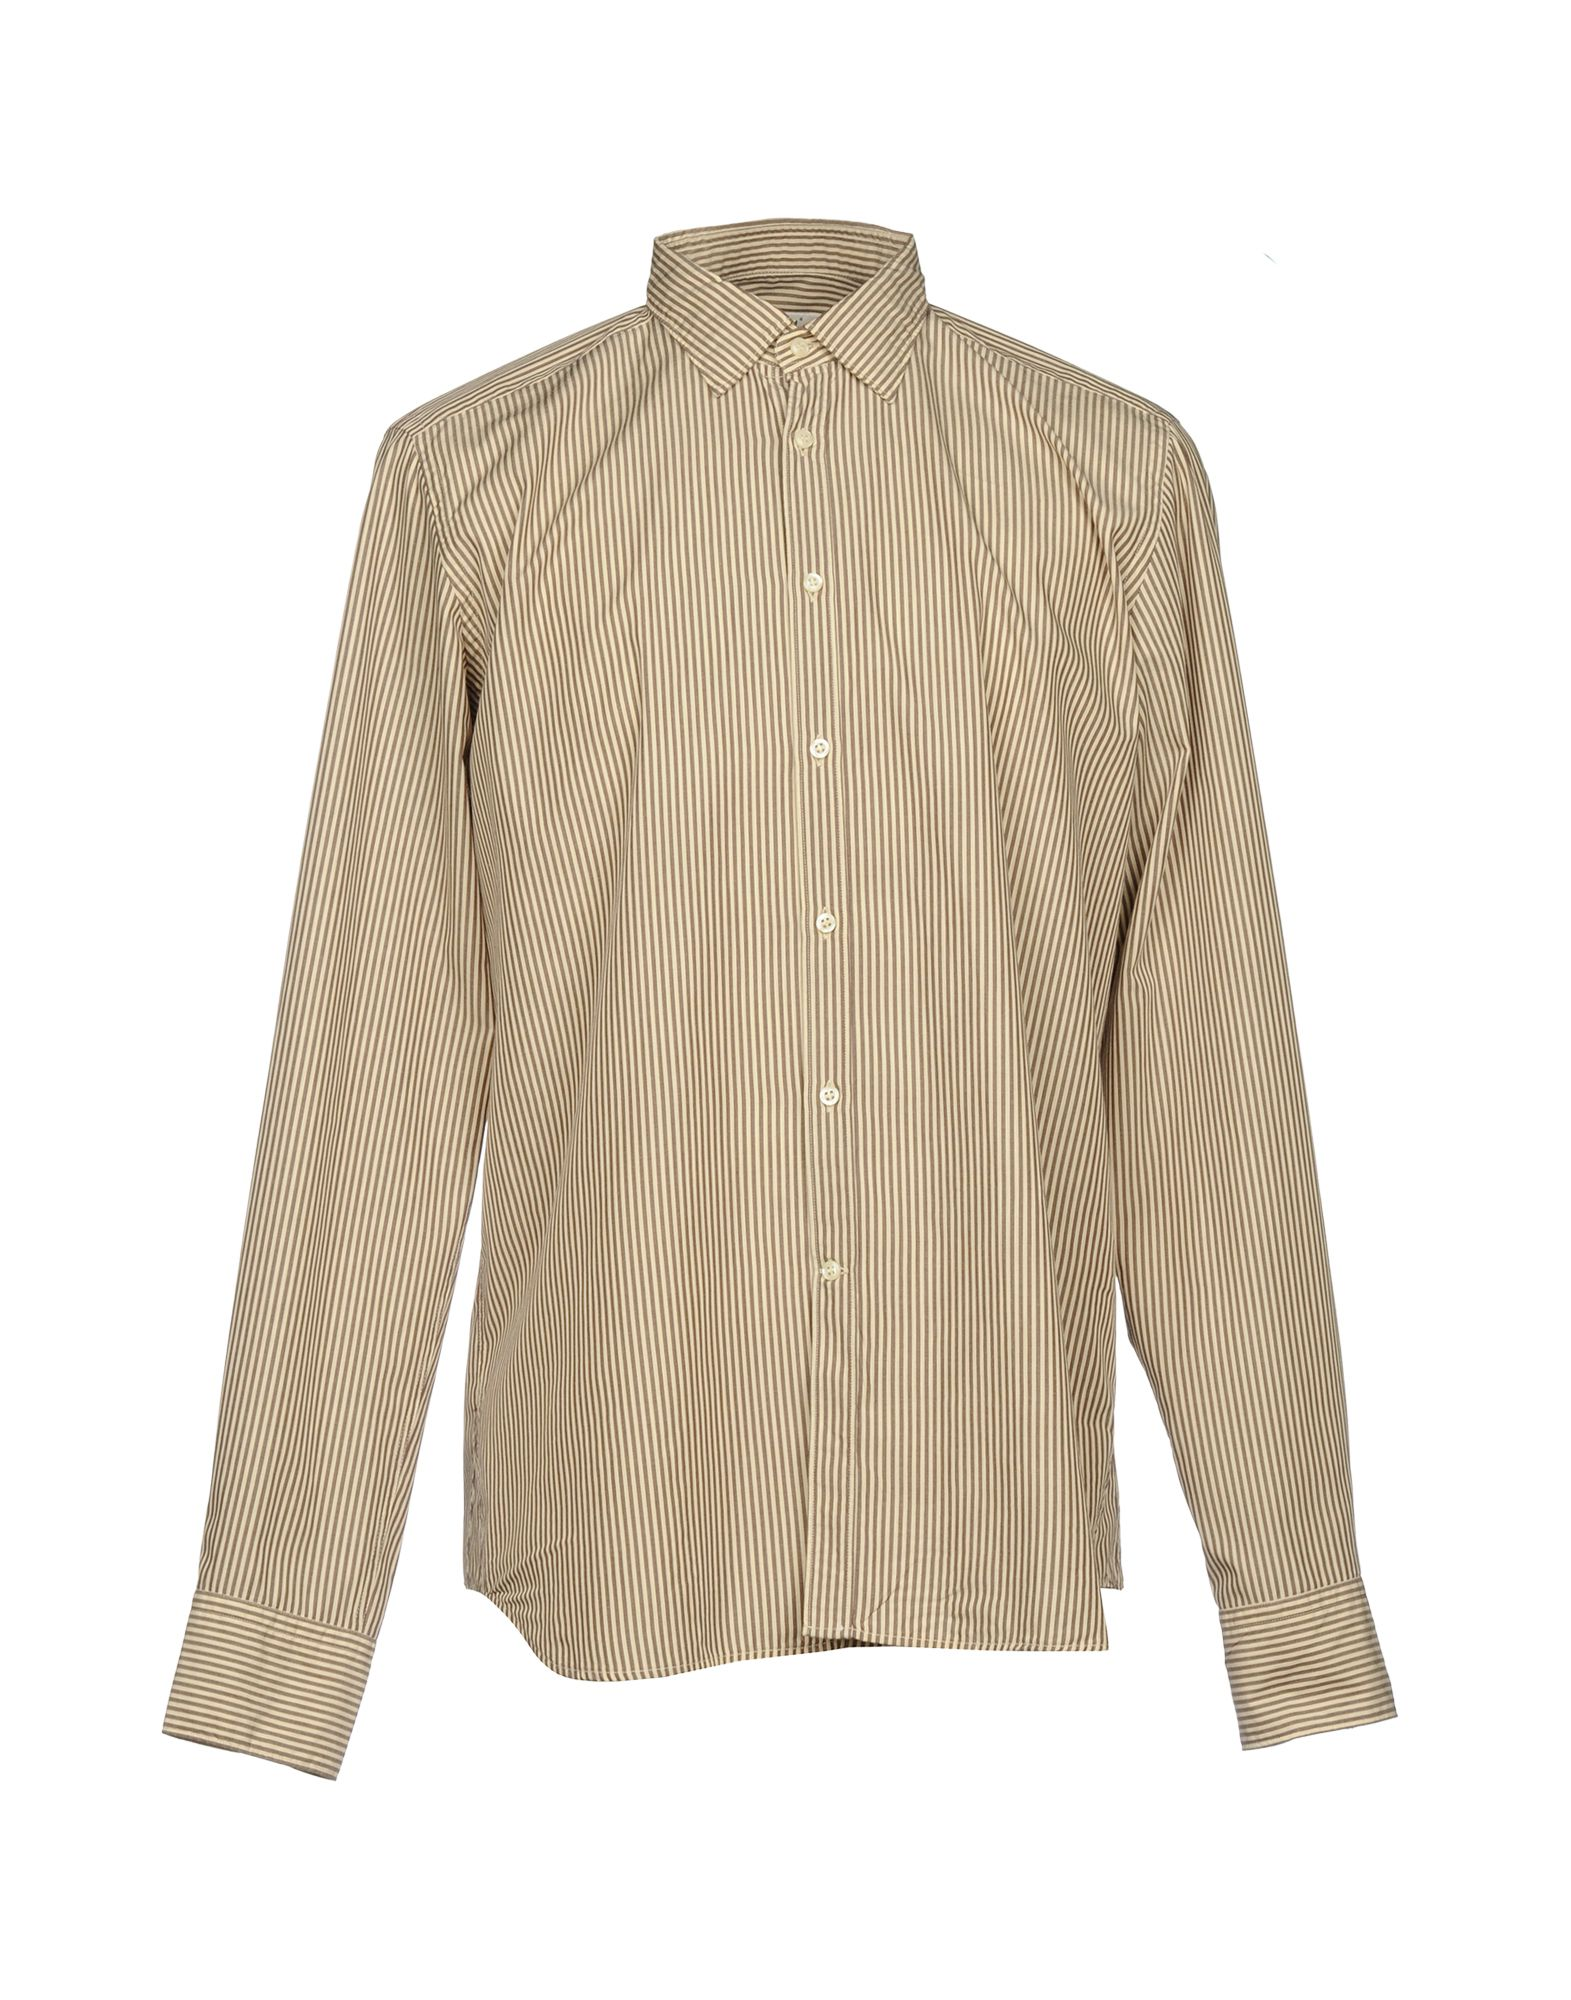 BEVILACQUA Striped Shirt in Beige